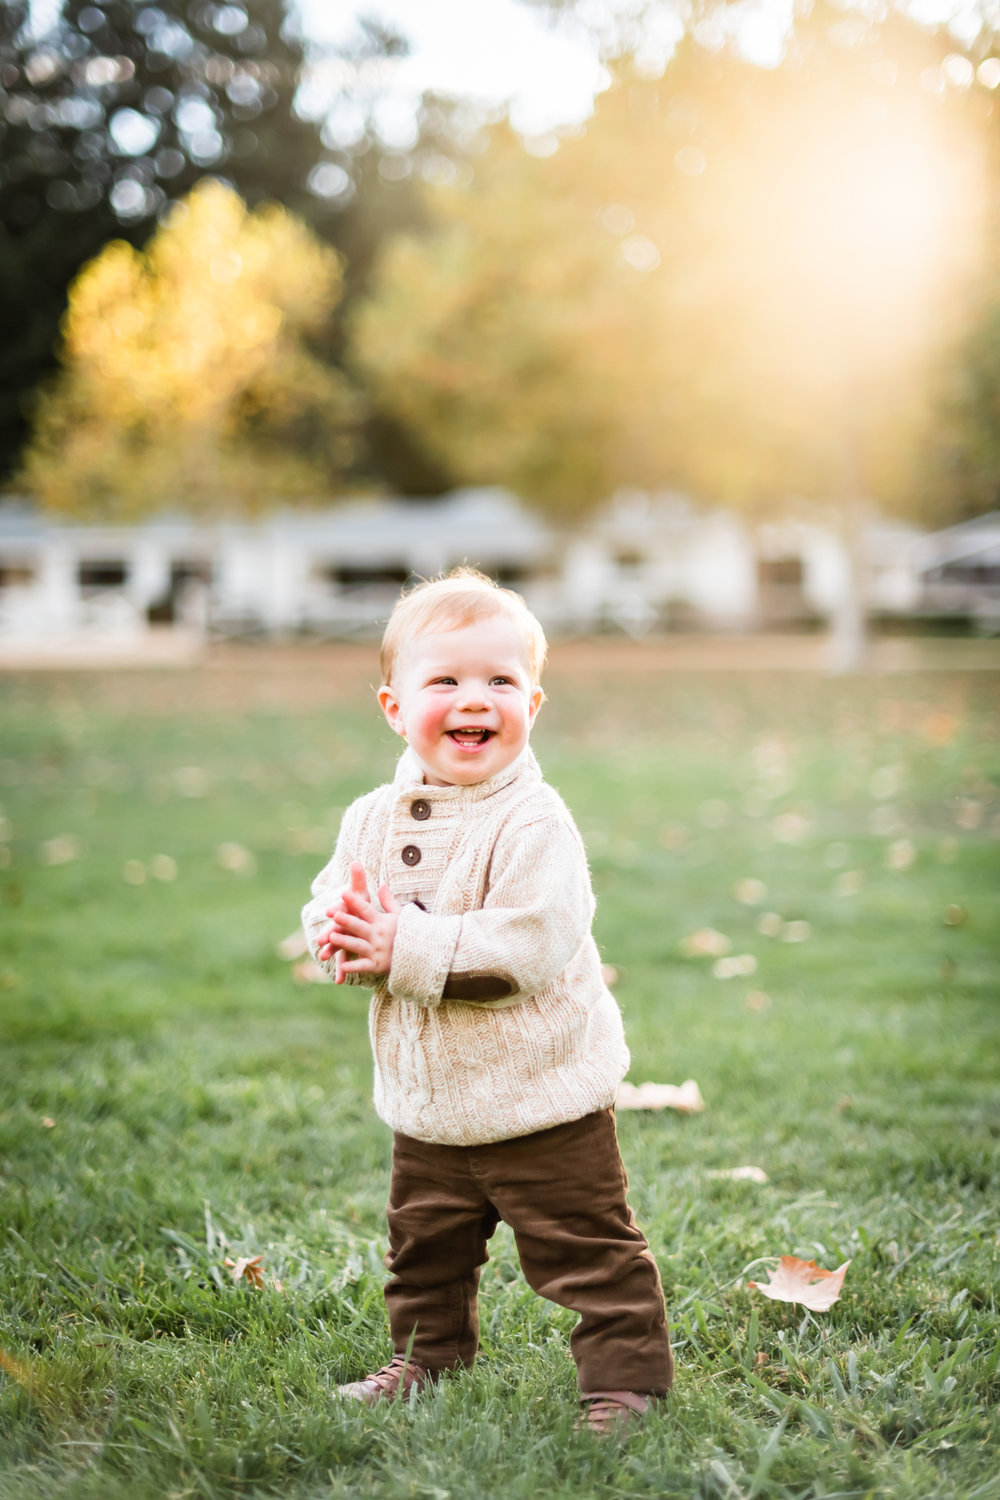 A photo of their toddler during the family lifestyle photo session at Hap Magee Park in Danville, CA